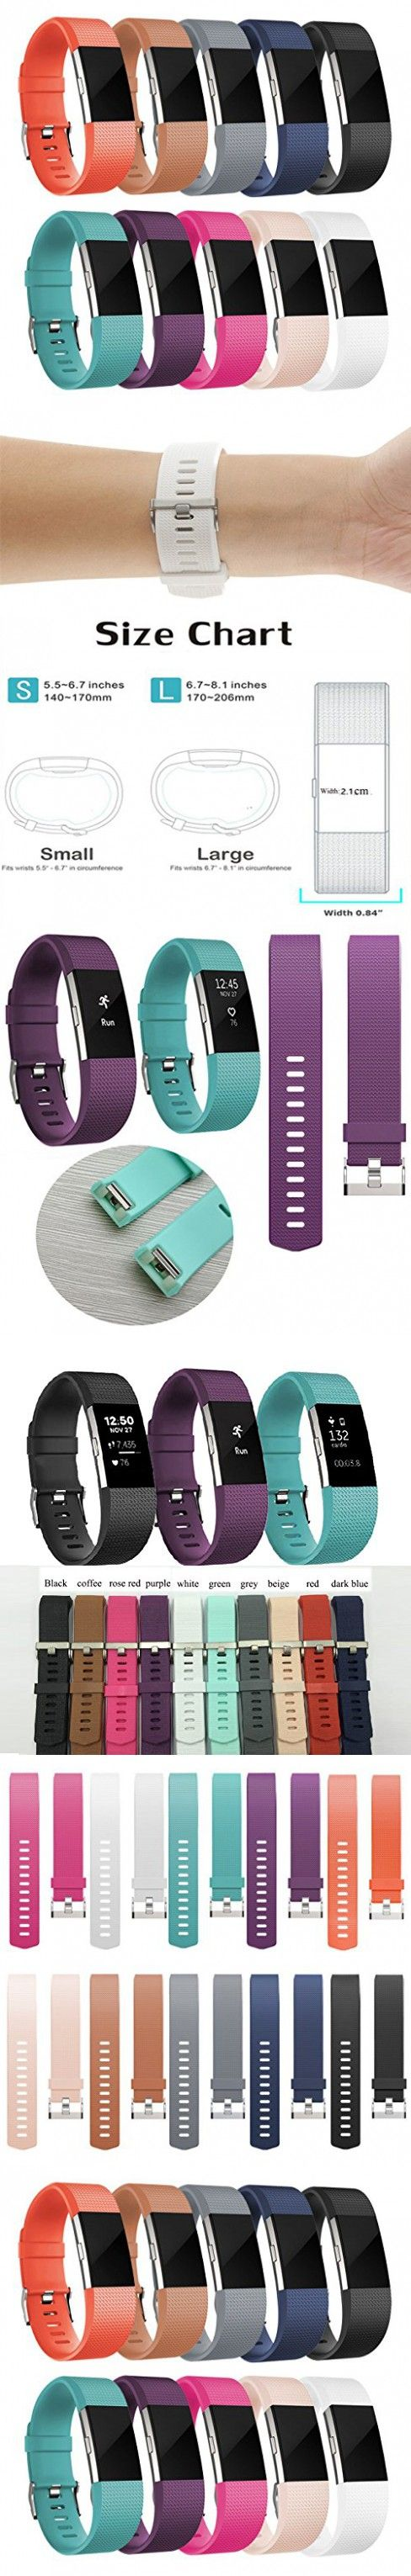 Band/strape for Fitbit Charge 2, Replacement Sport Fitness Accessory Band for Fitbit Charge 2, 10 different colors, + Free Screen Protector (10-colors, Small)